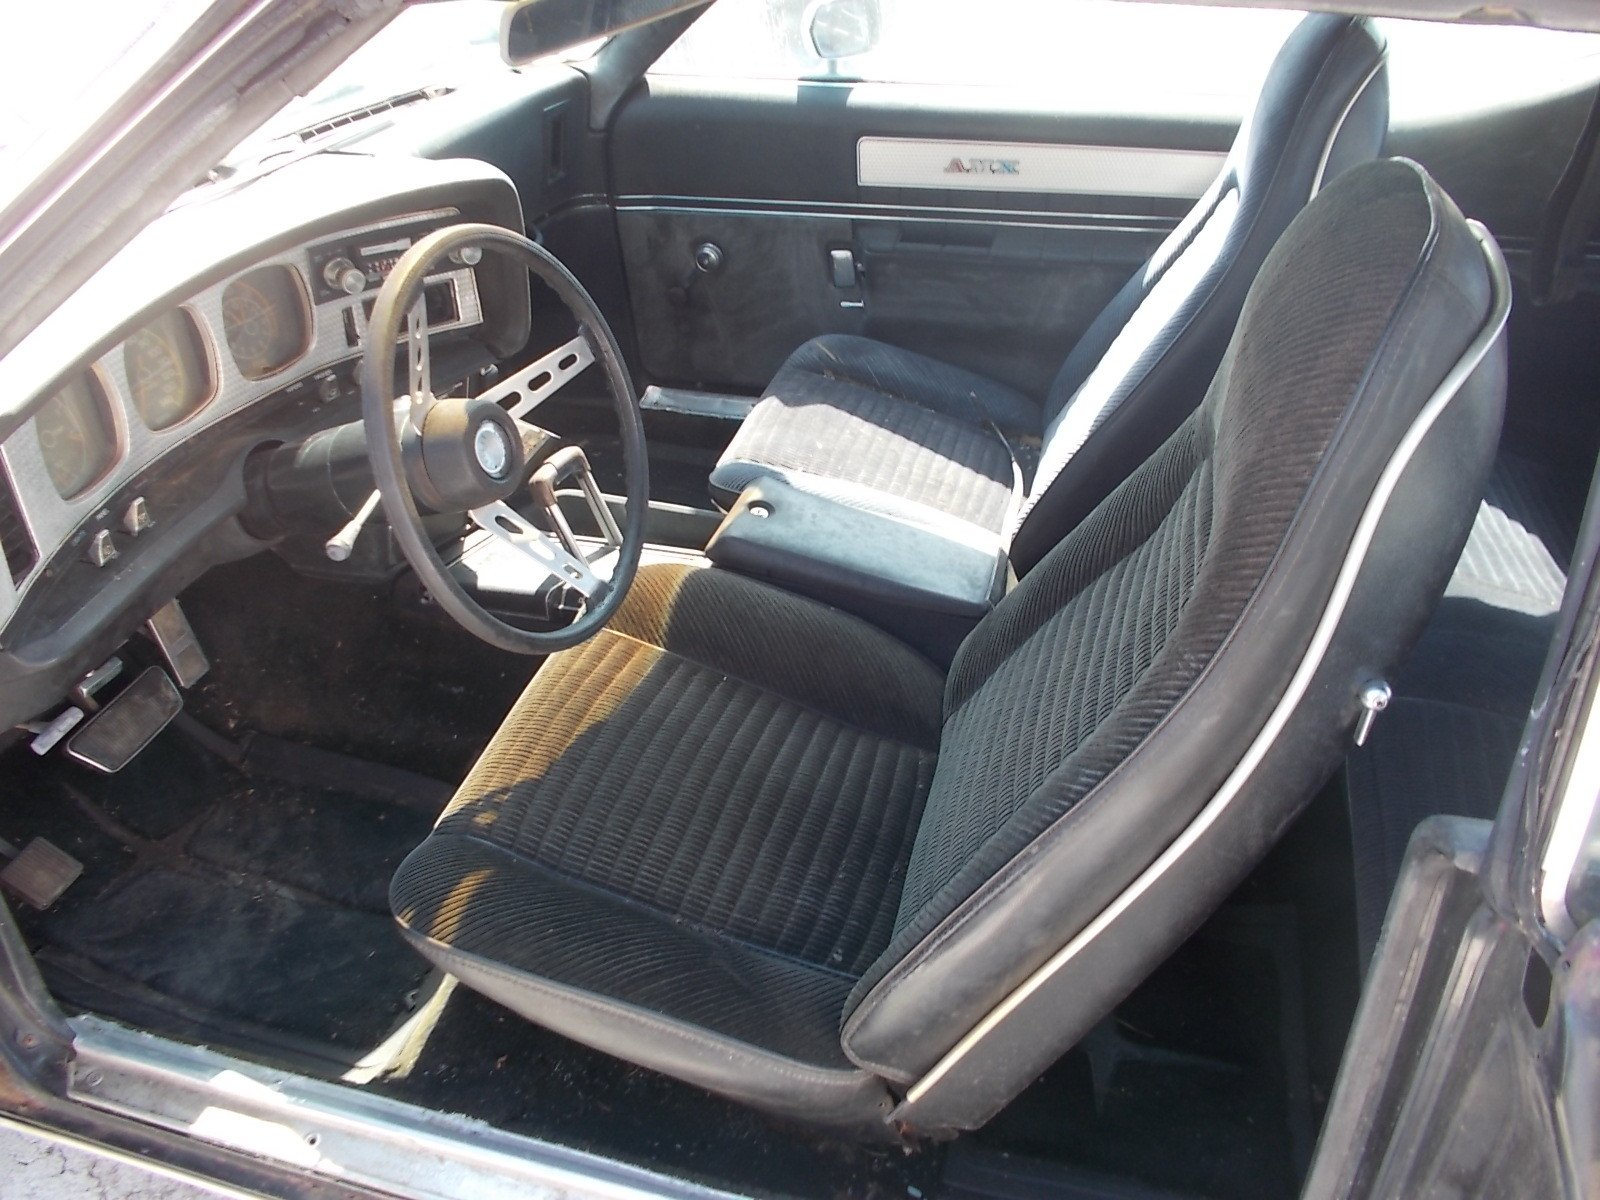 Amc Amx Classics For Sale On Autotrader 1972 Mustang Turn Signal Wiring Diagram